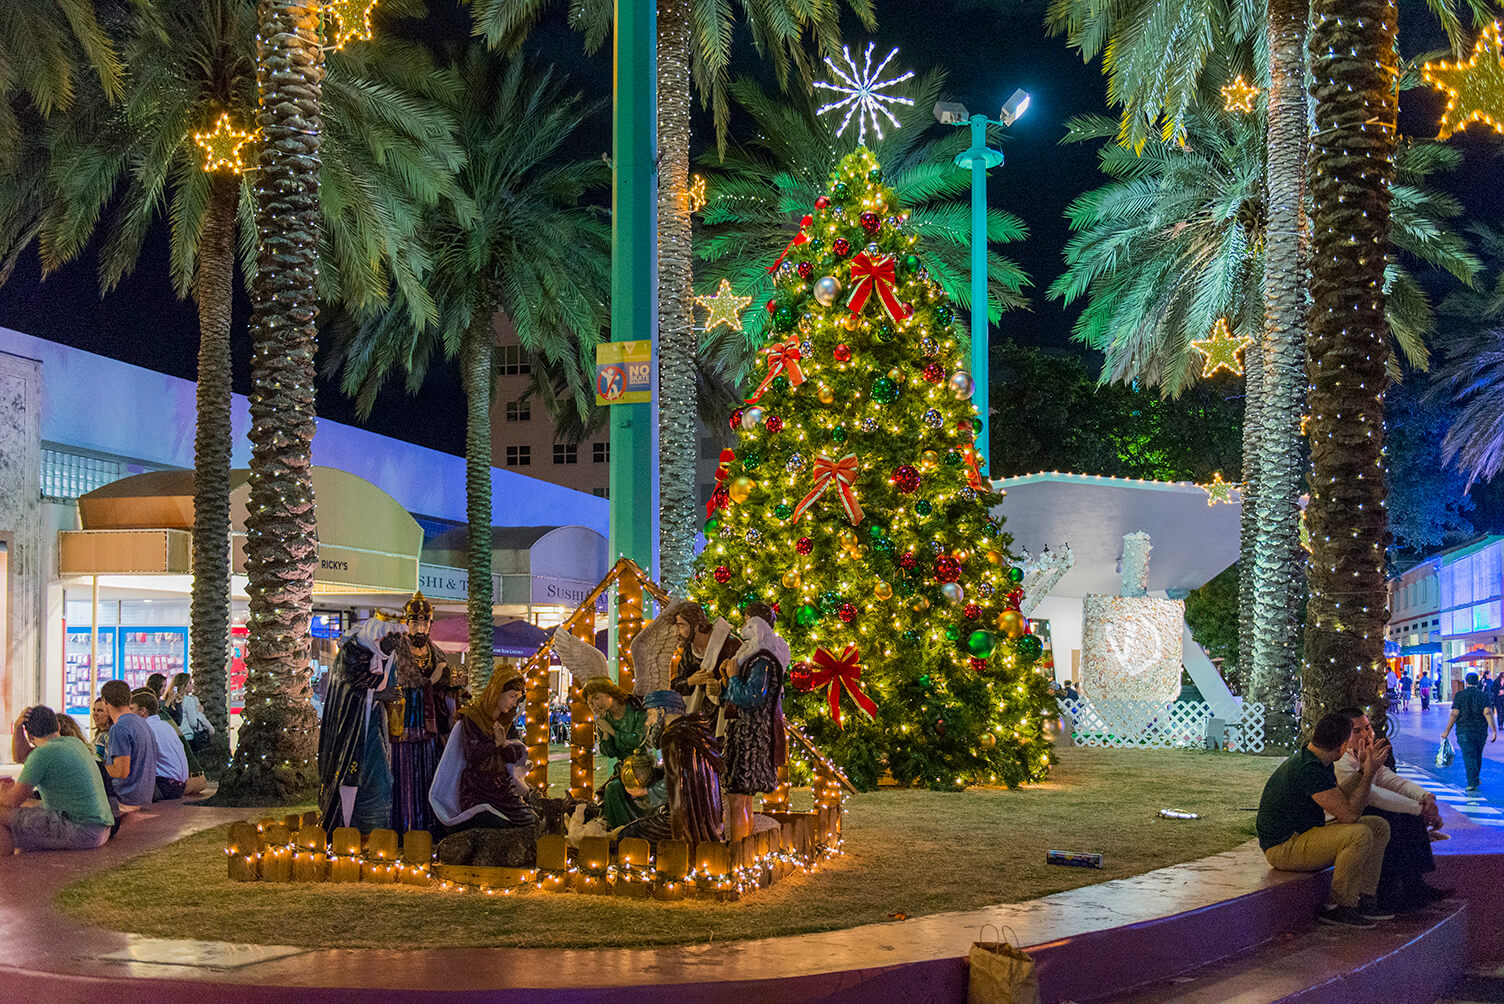 The Reasons Behind Our Christmas Decorations - Why We Go Nuts for Lights, Trees and Tinsel